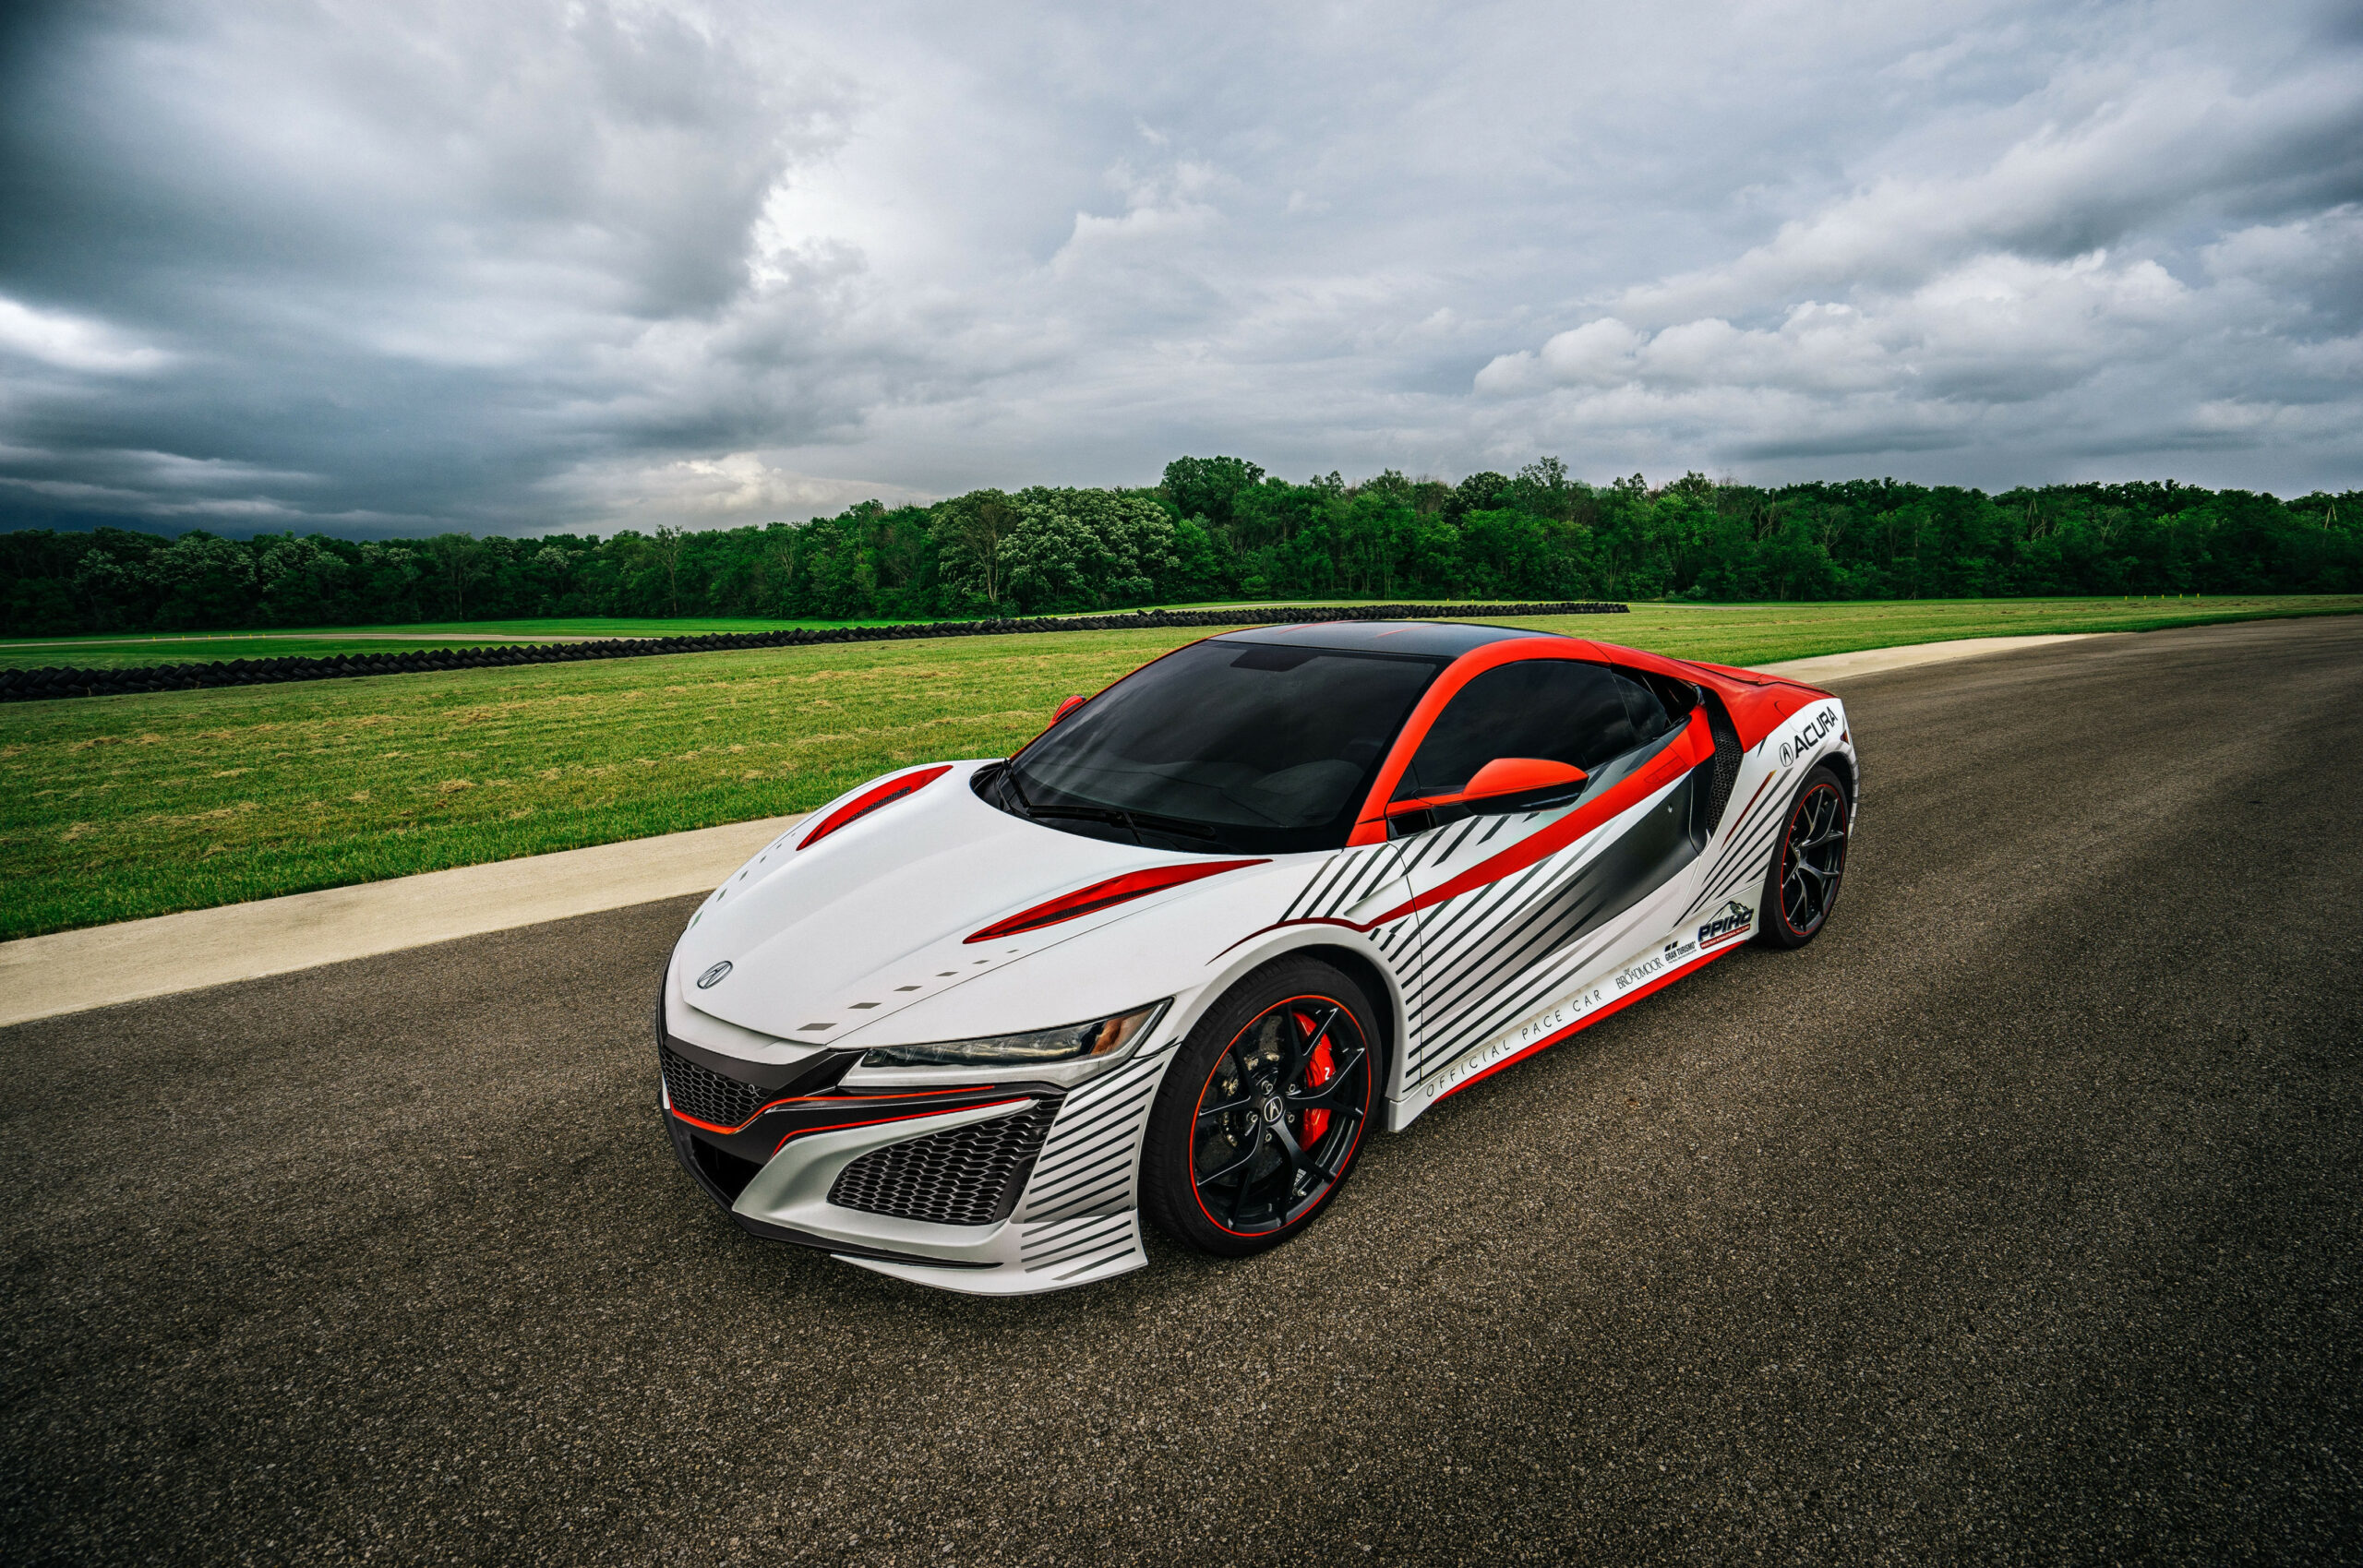 New Acura NSX to Pace Pikes Peak Hill Climb